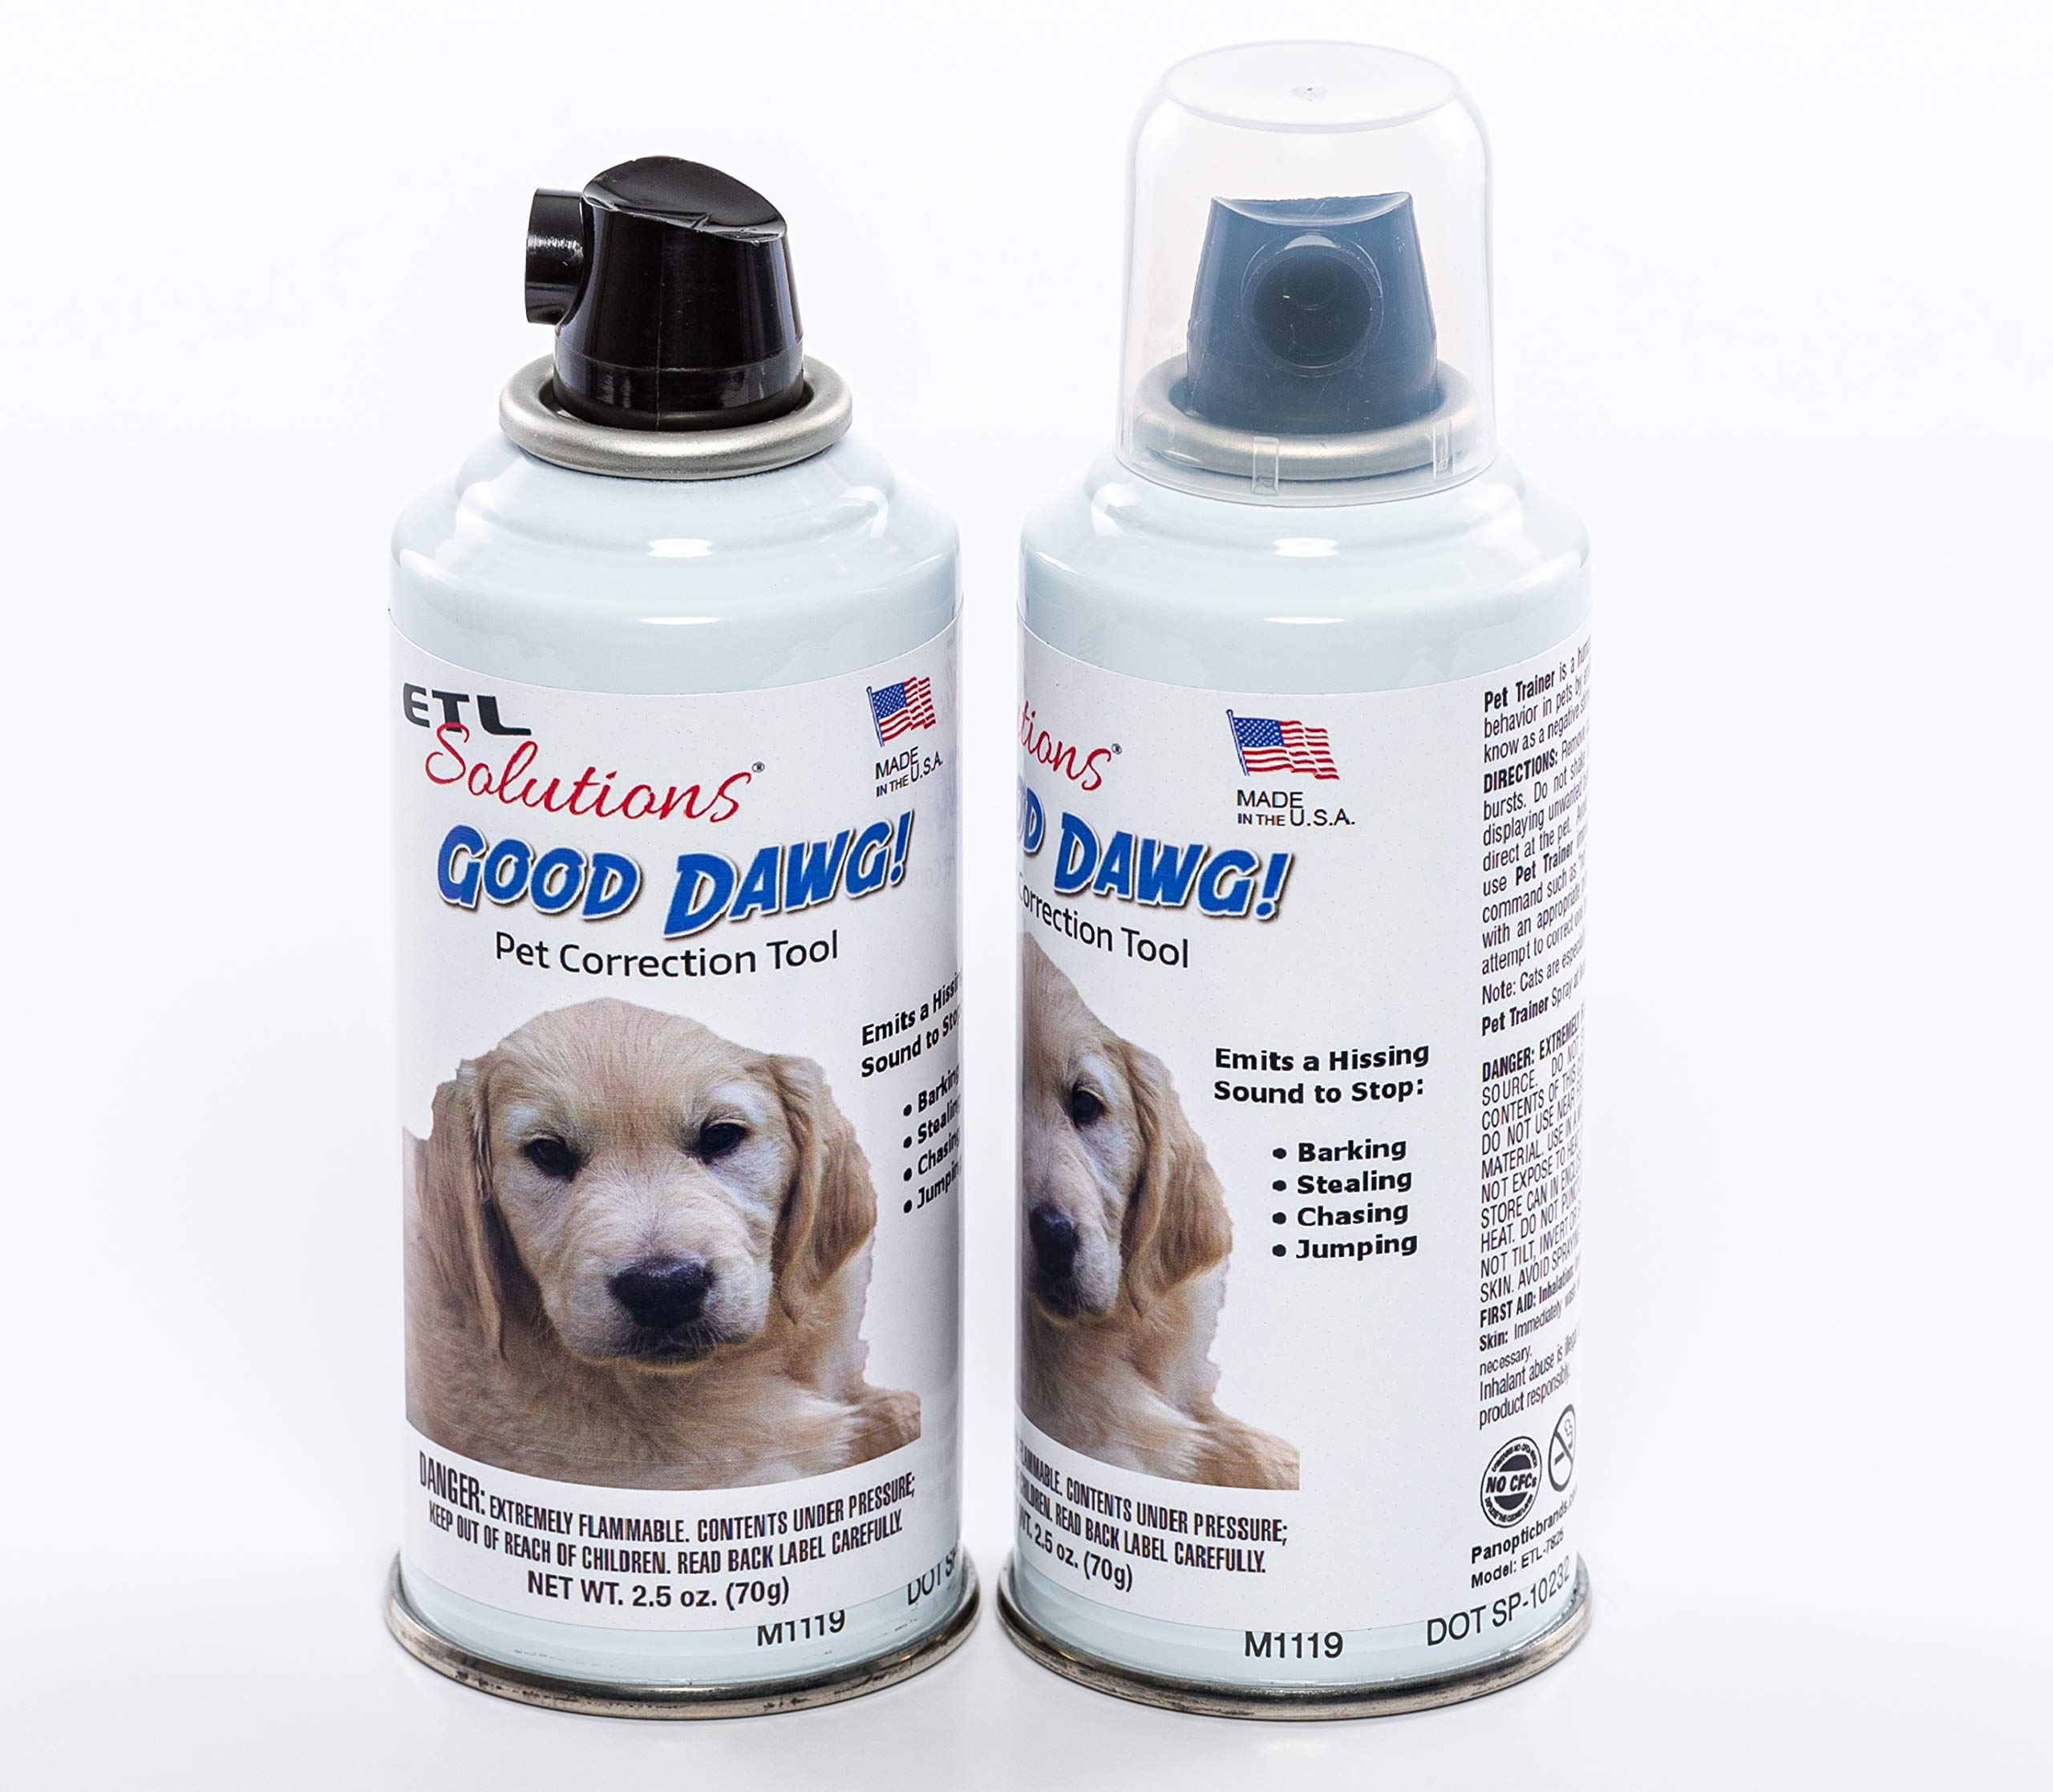 ETL Solutions 2.5oz(75ml) Good Dawg Sonic Pet Correction Spray - Humane Non Shock Hand Held Dog Training Device - Value 2 Pack! by ETL Solutions